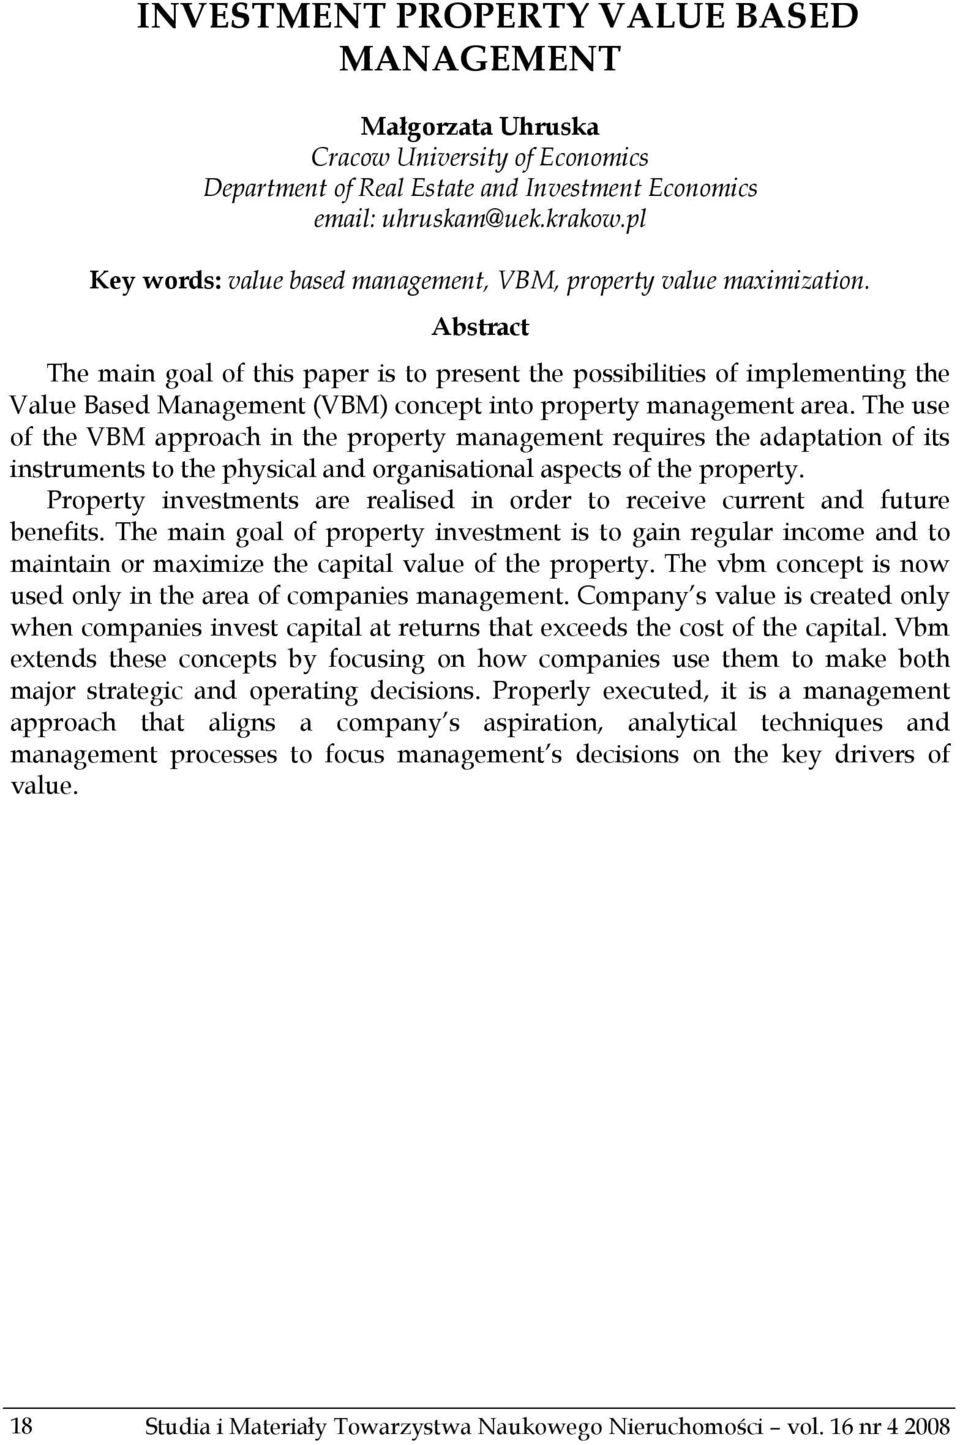 Abstract The main goal of this paper is to present the possibilities of implementing the Value Based Management (VBM) concept into property management area.